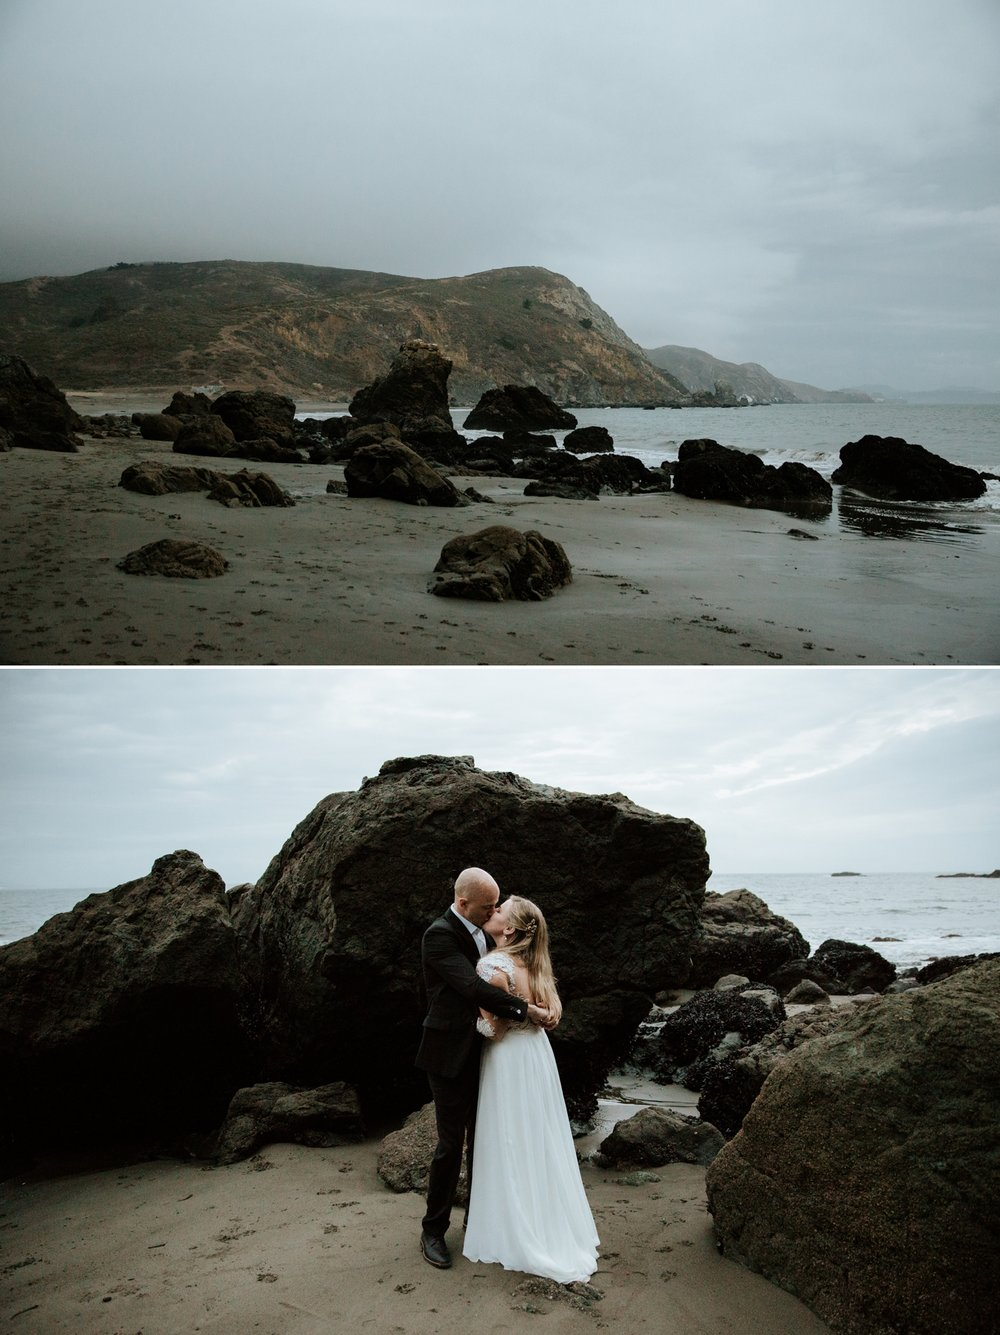 hannah-nick-intimate-muir-woods-wedding-38.jpg